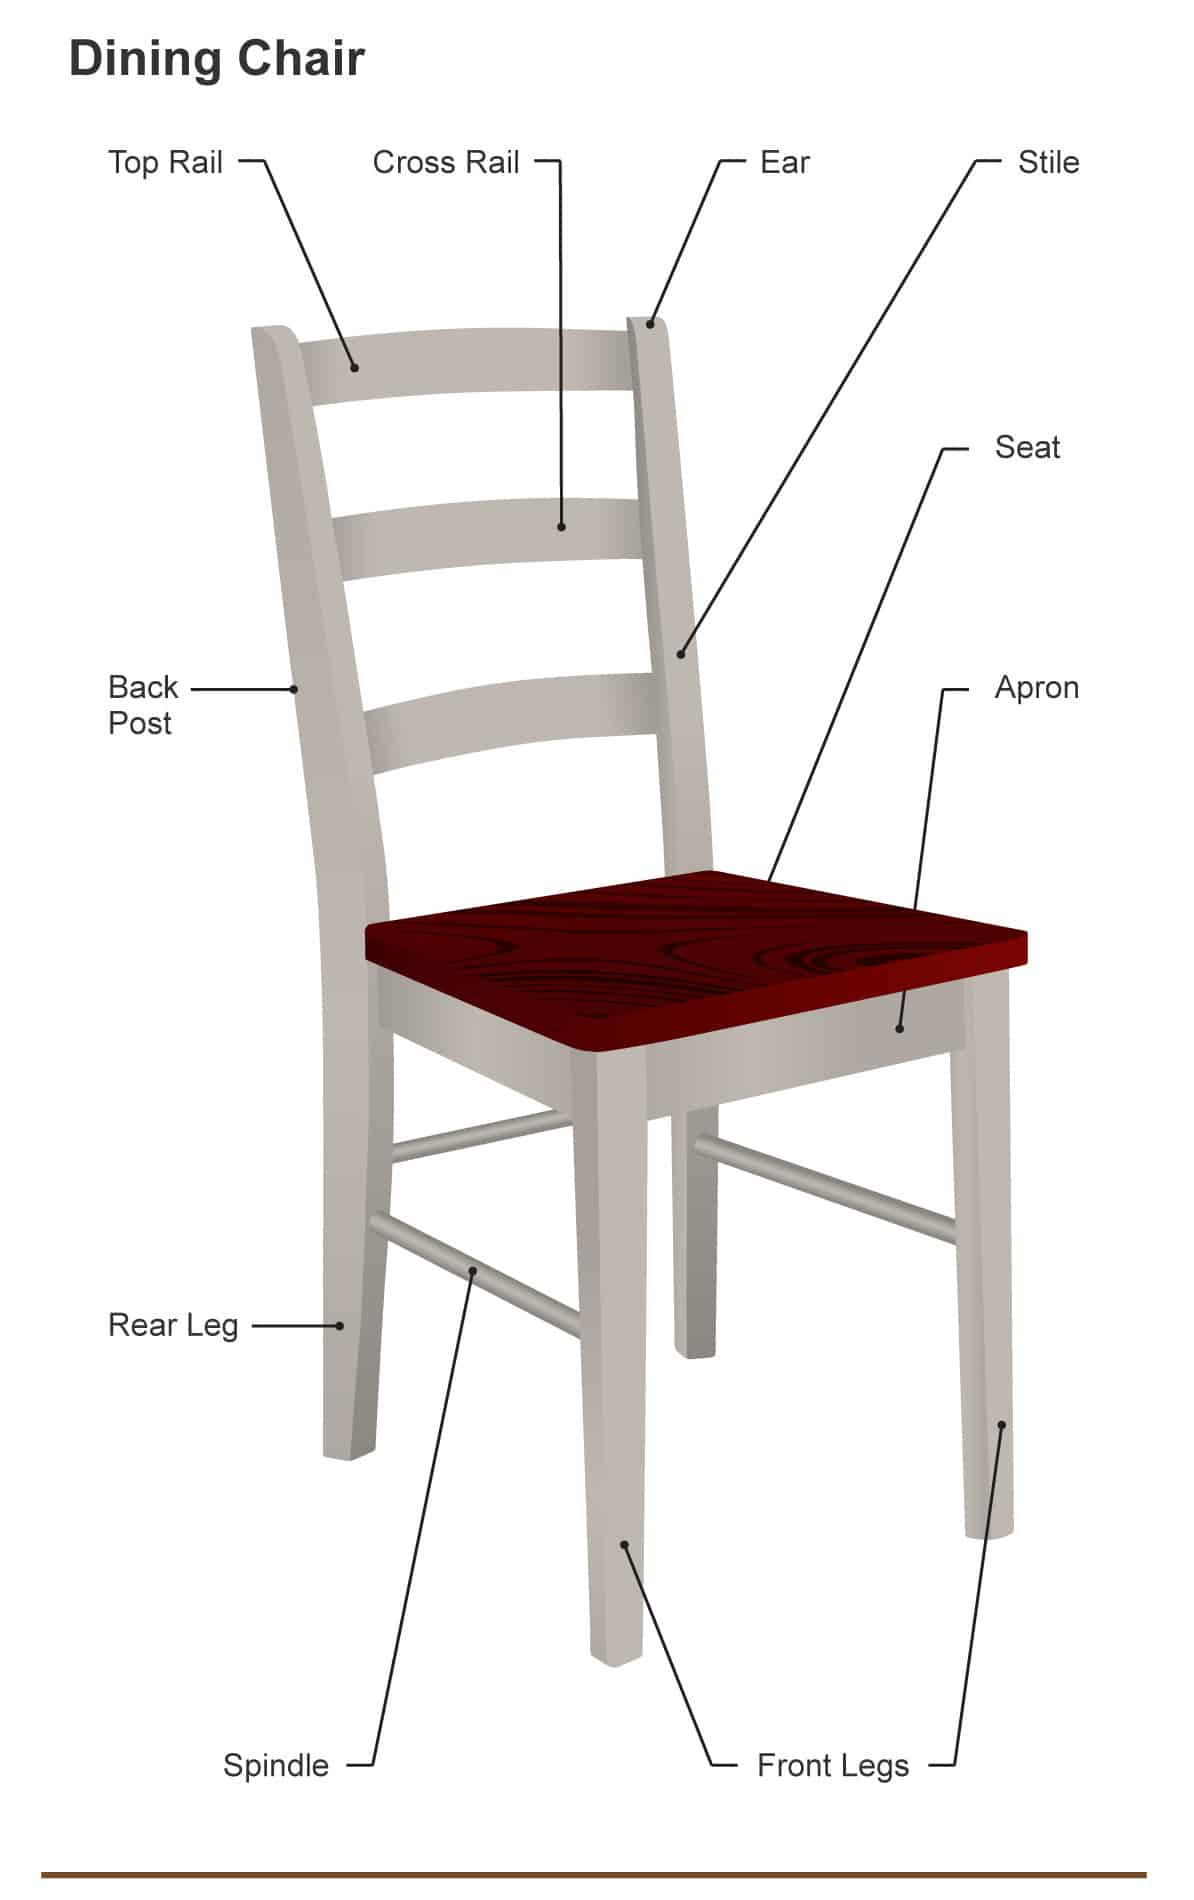 hight resolution of parts of a dining chair diagram